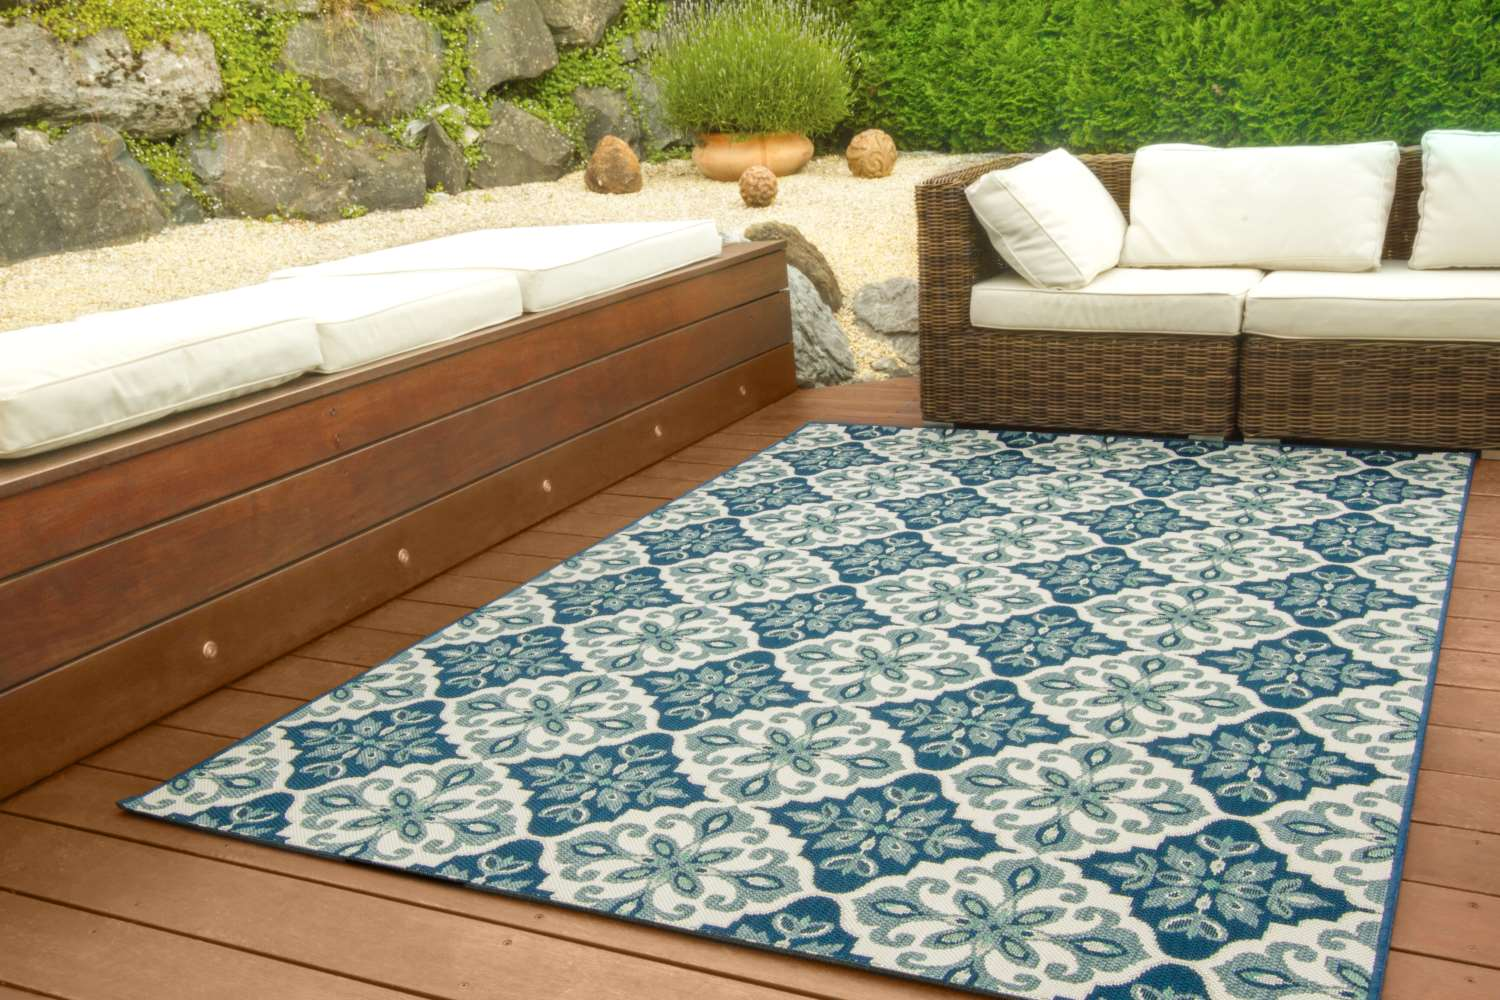 outdoor teppich meterware 18 decorative outdoor area rugs. Black Bedroom Furniture Sets. Home Design Ideas